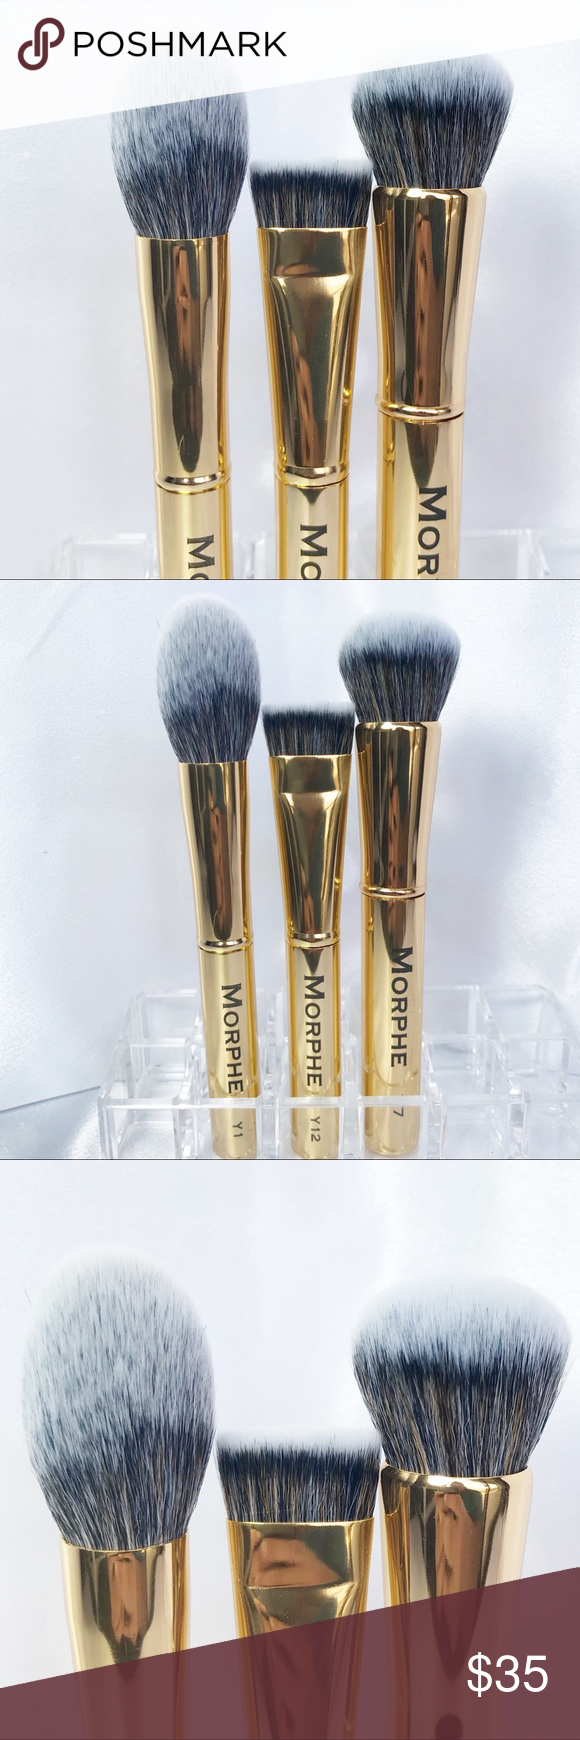 ‼️SOLD‼️🆕Morphe 3 Pc Gilded Brush Set🆕 NWT (With images